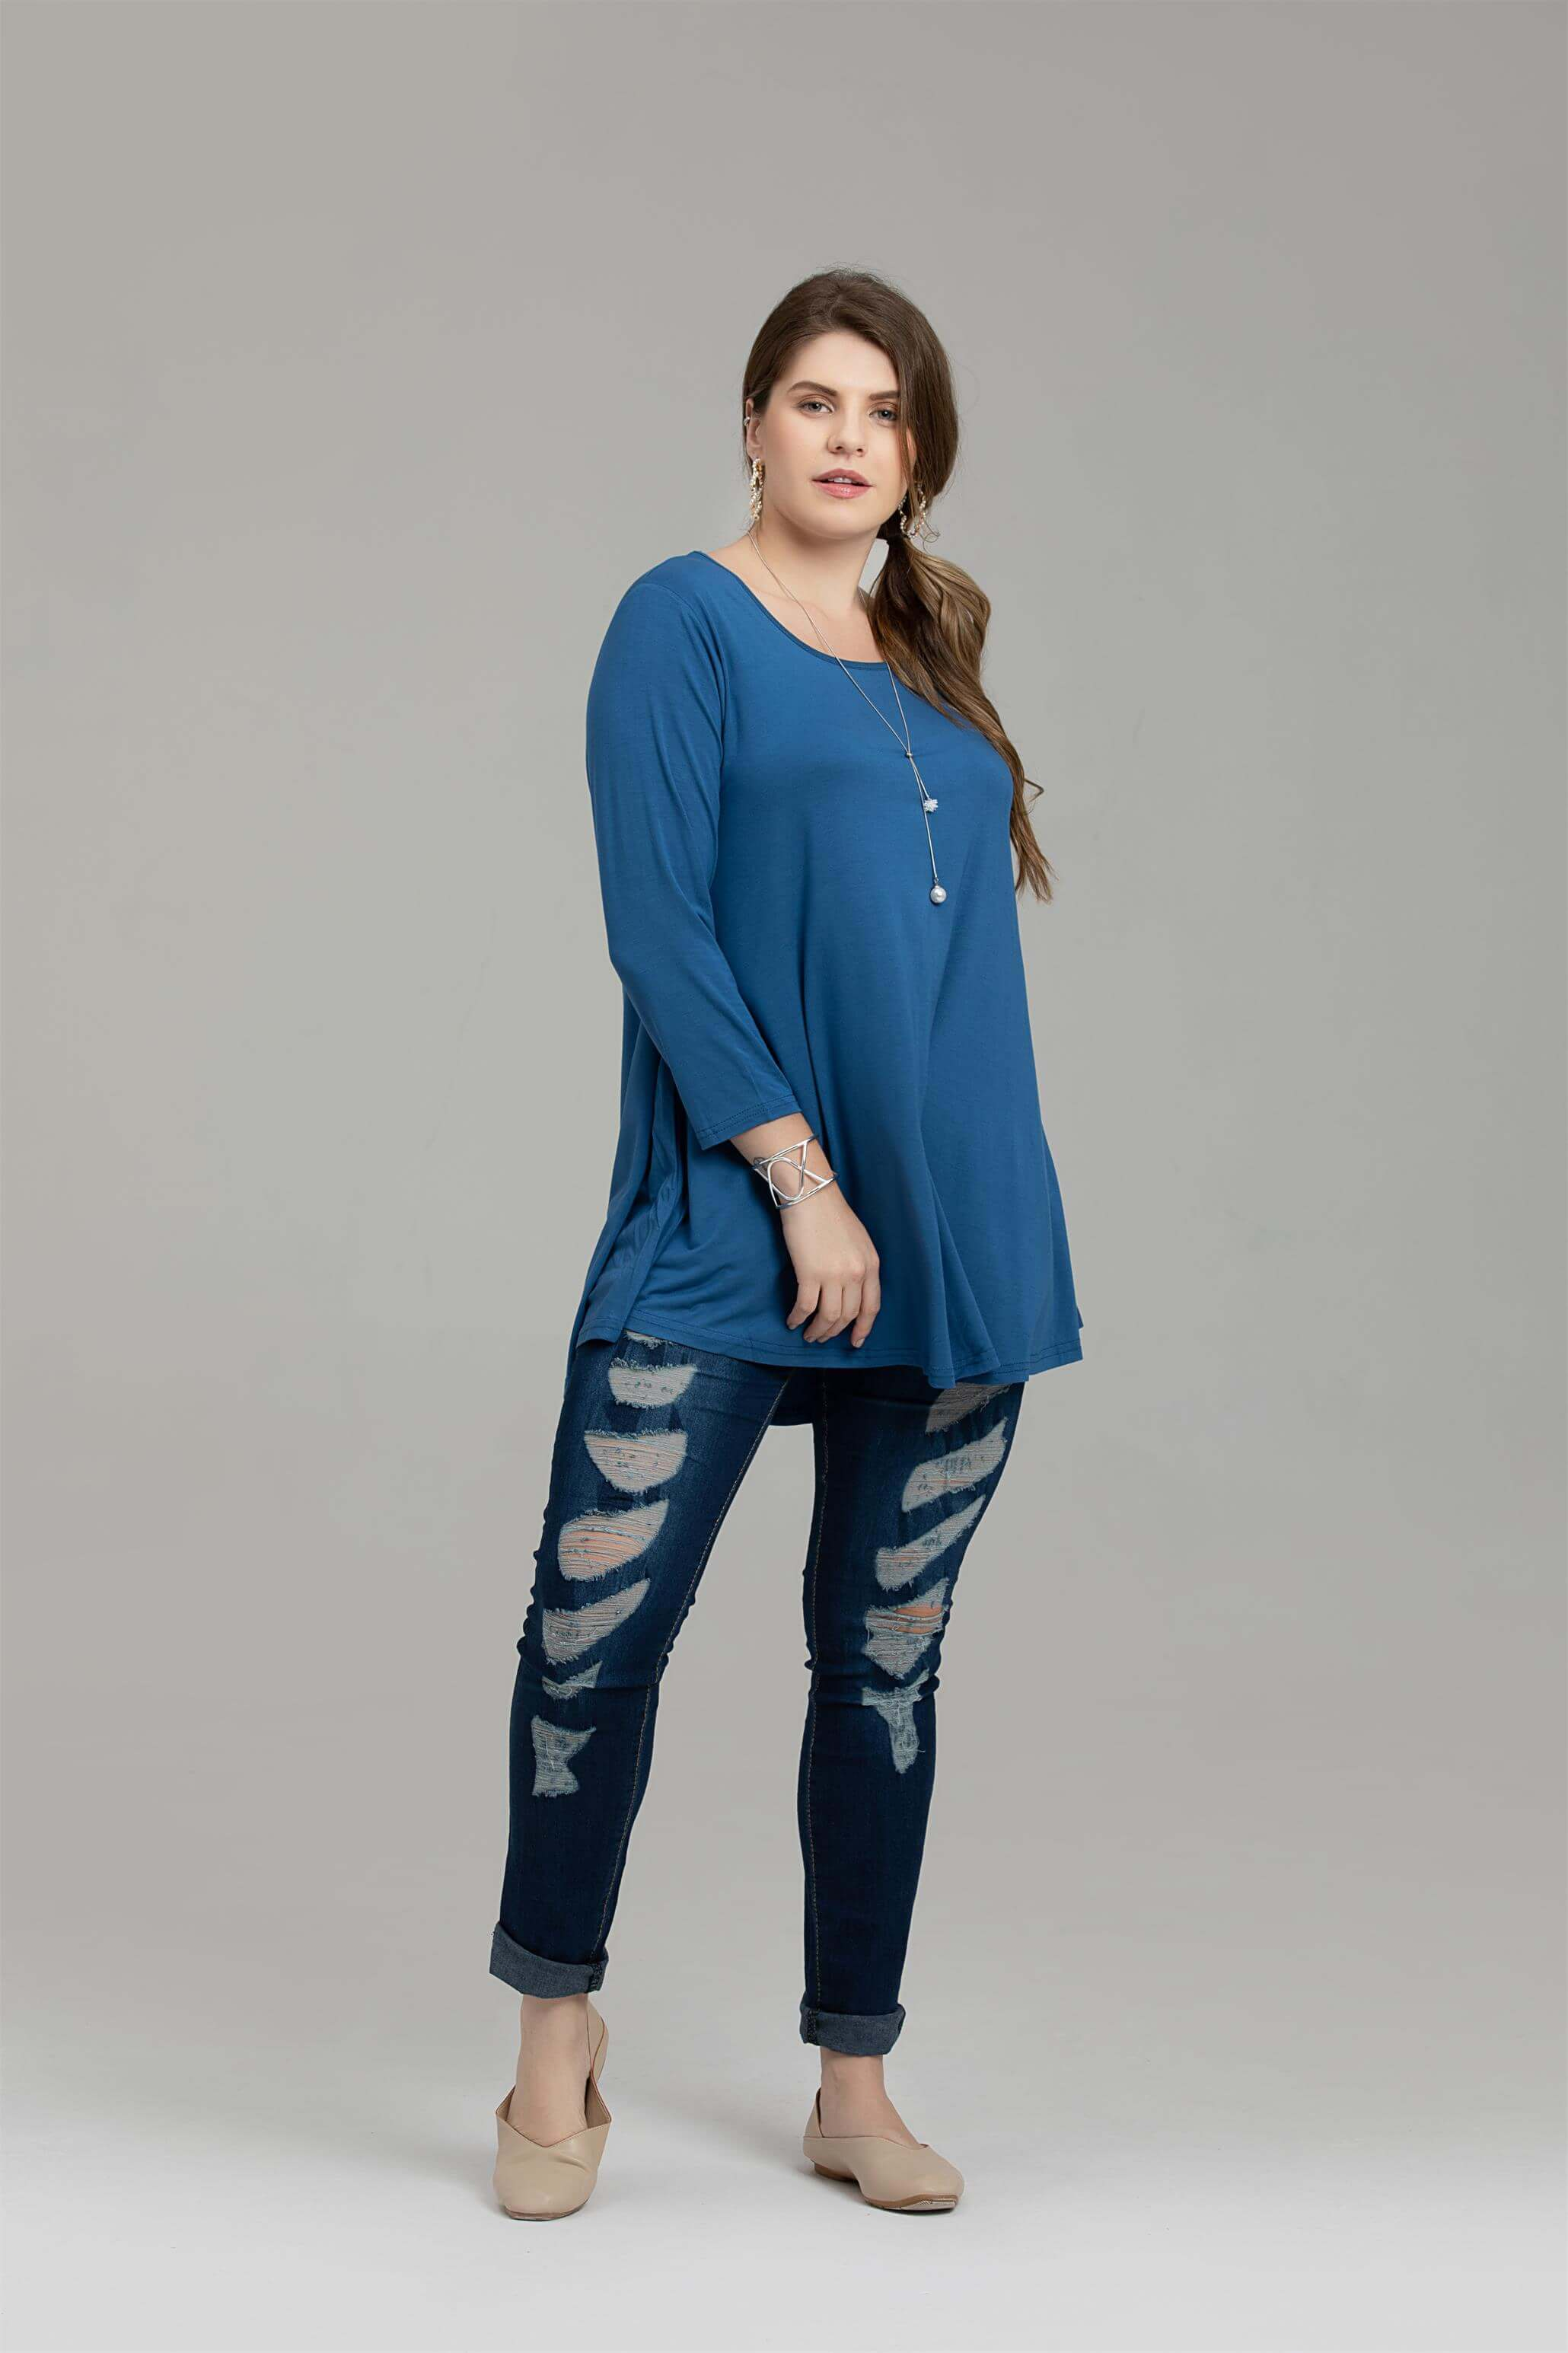 3/4 Sleeve Tunic Top Loose Fit Flare Tunic Shirt Tops LARACE